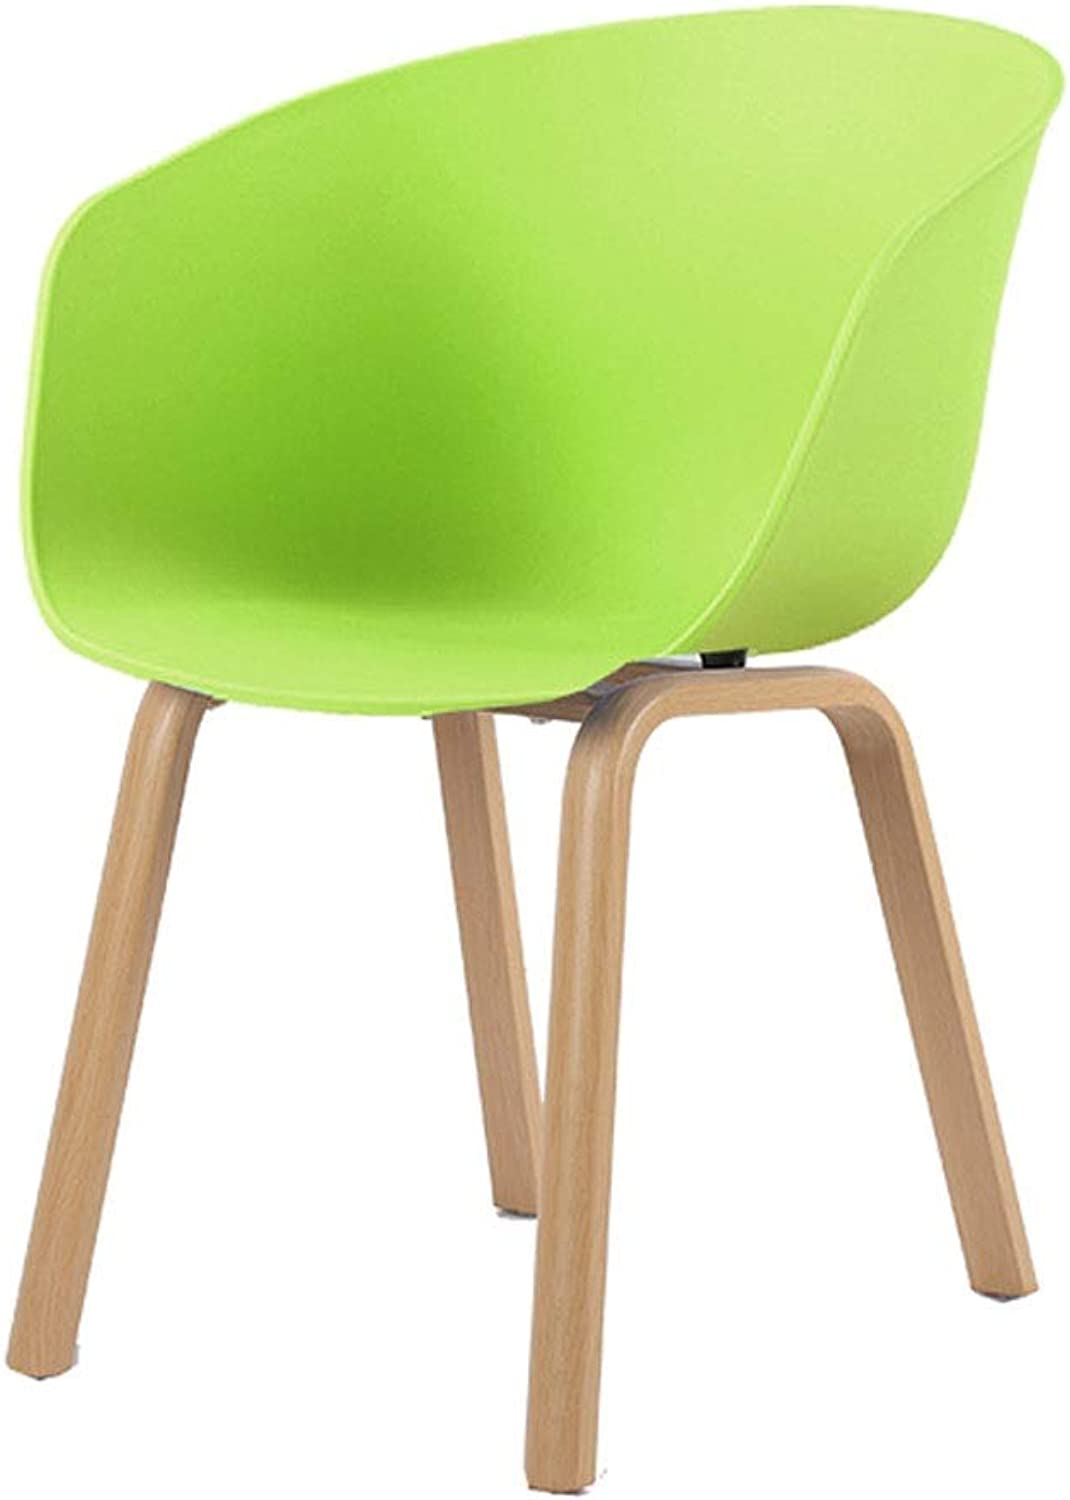 Ailj Home Dining Chair, Hotel Wood Negotiating Chair Cafe Lounge Chair Computer Office Chair 46  42  79 cm 3 colors (color   Green)